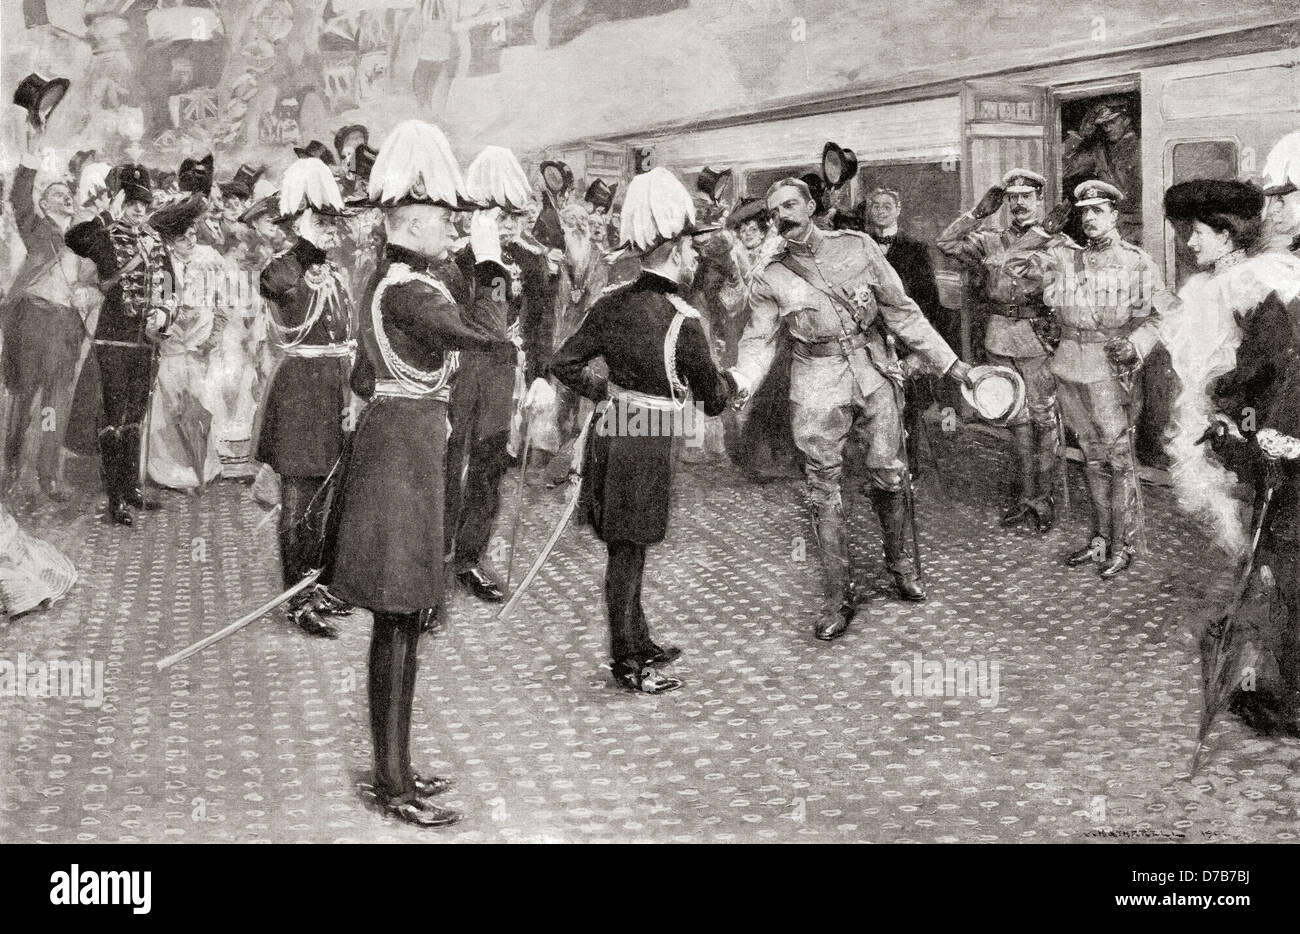 Lord Kitchener's homecoming in 1902 from South Africa. After a drawing by W. Hatherell. - Stock Image